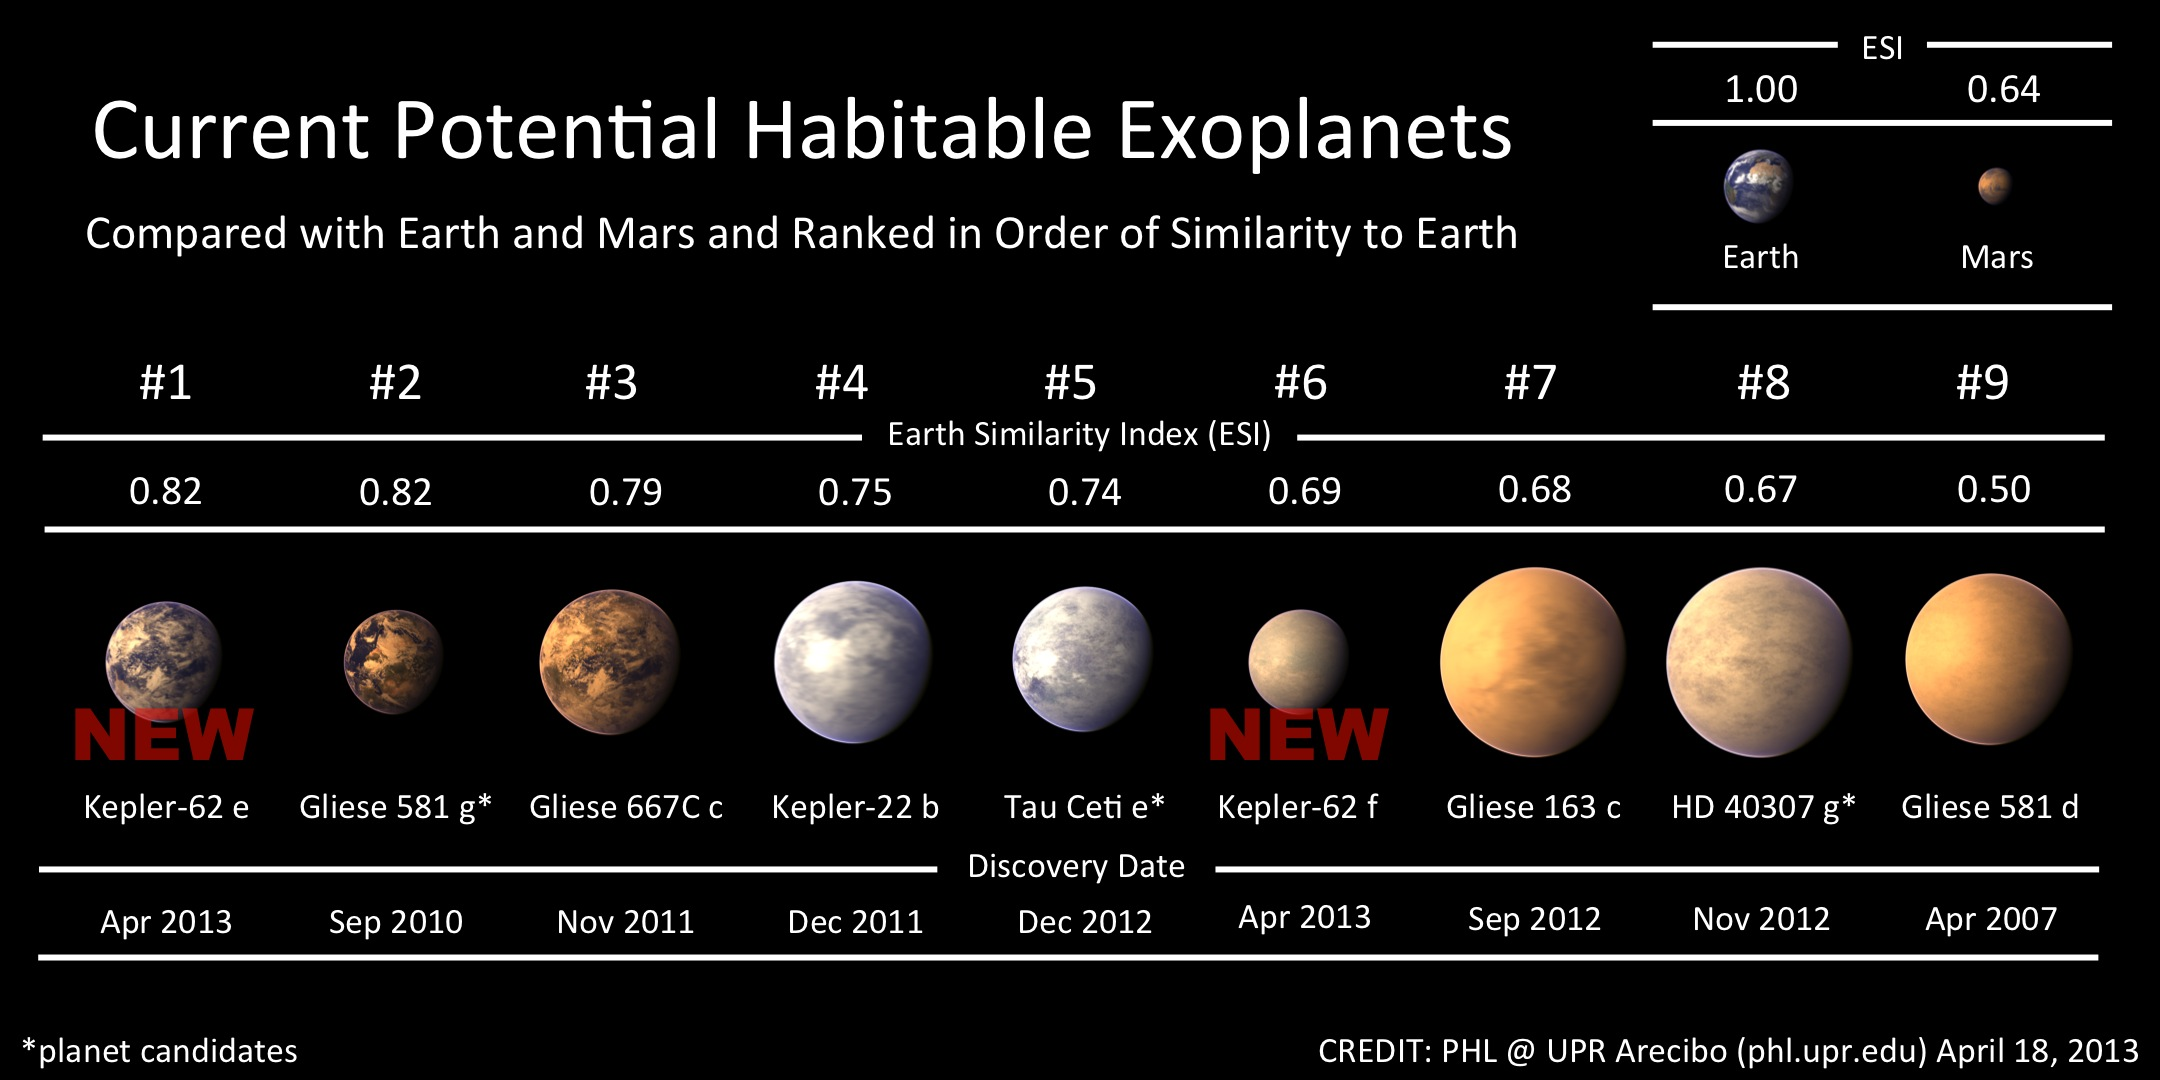 nasa kepler discovers new potentially habitable exoplanets